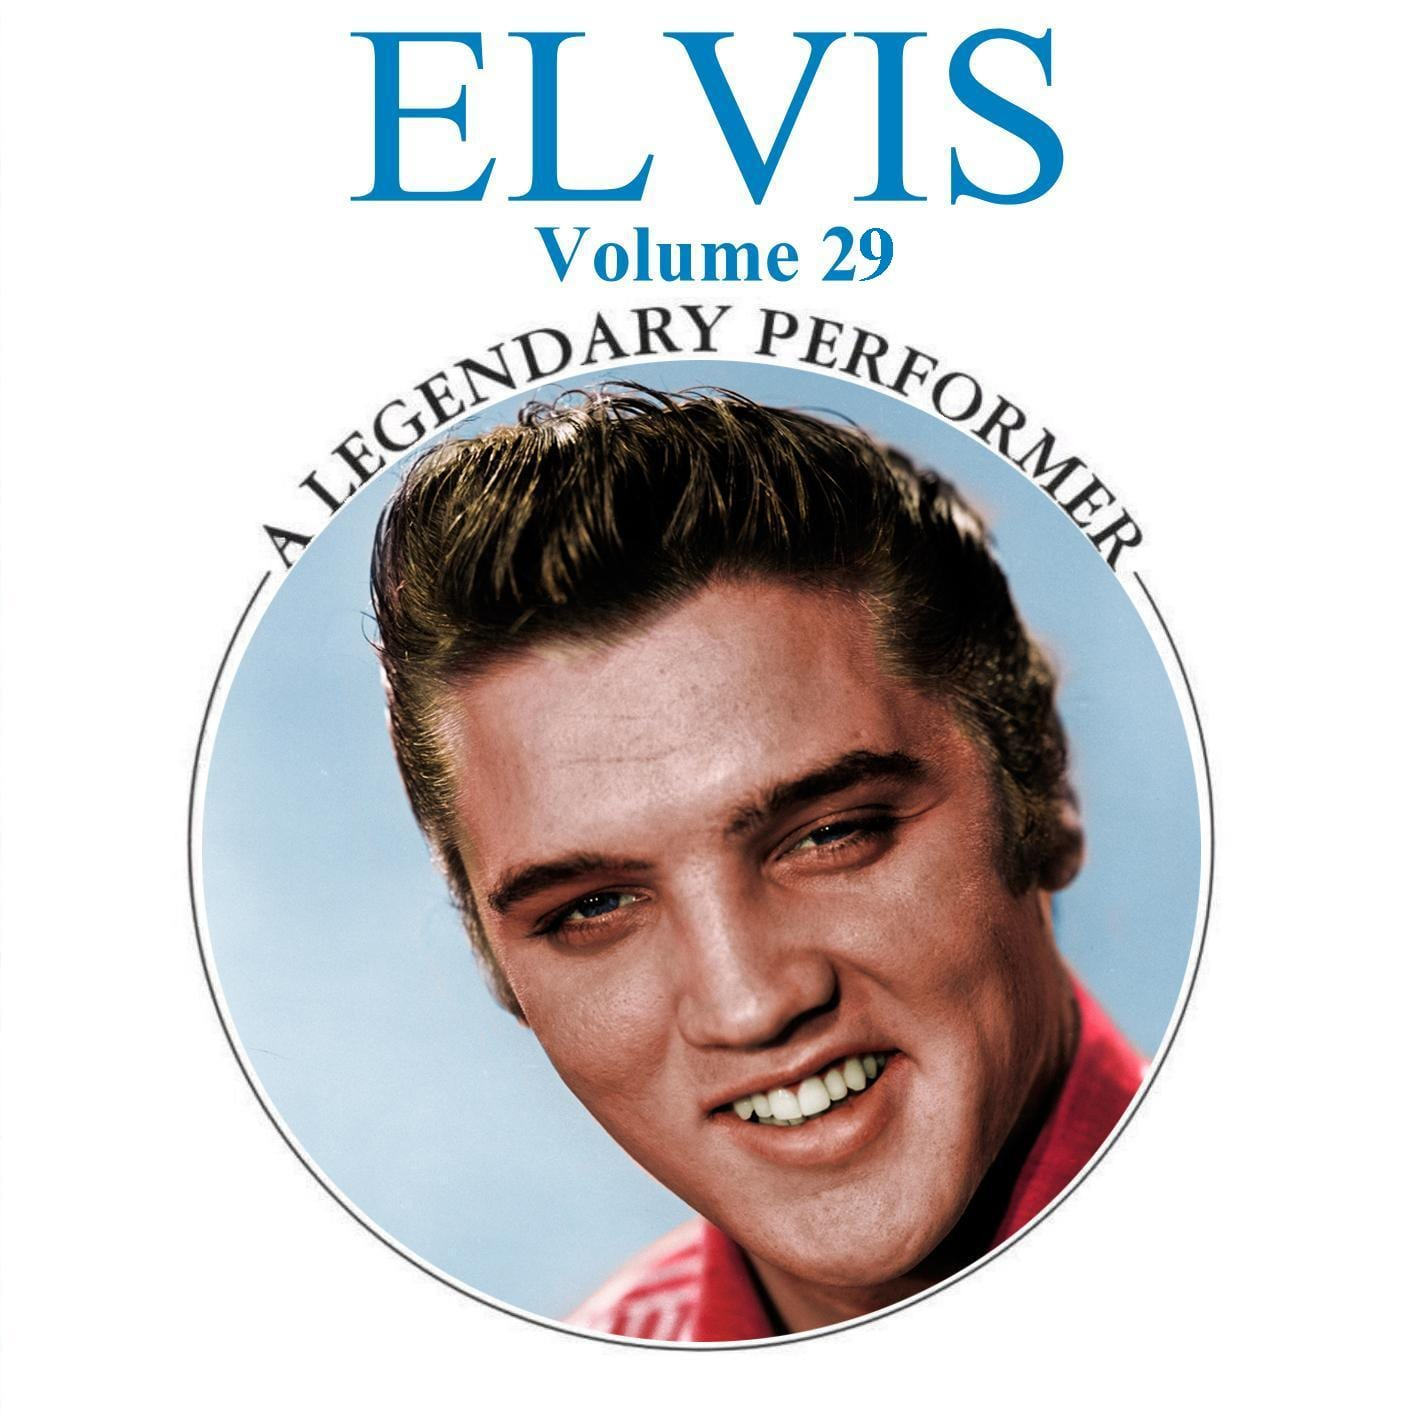 Elvis Presley - A Legendary Performer, Vol. 29 (2013) CD 8